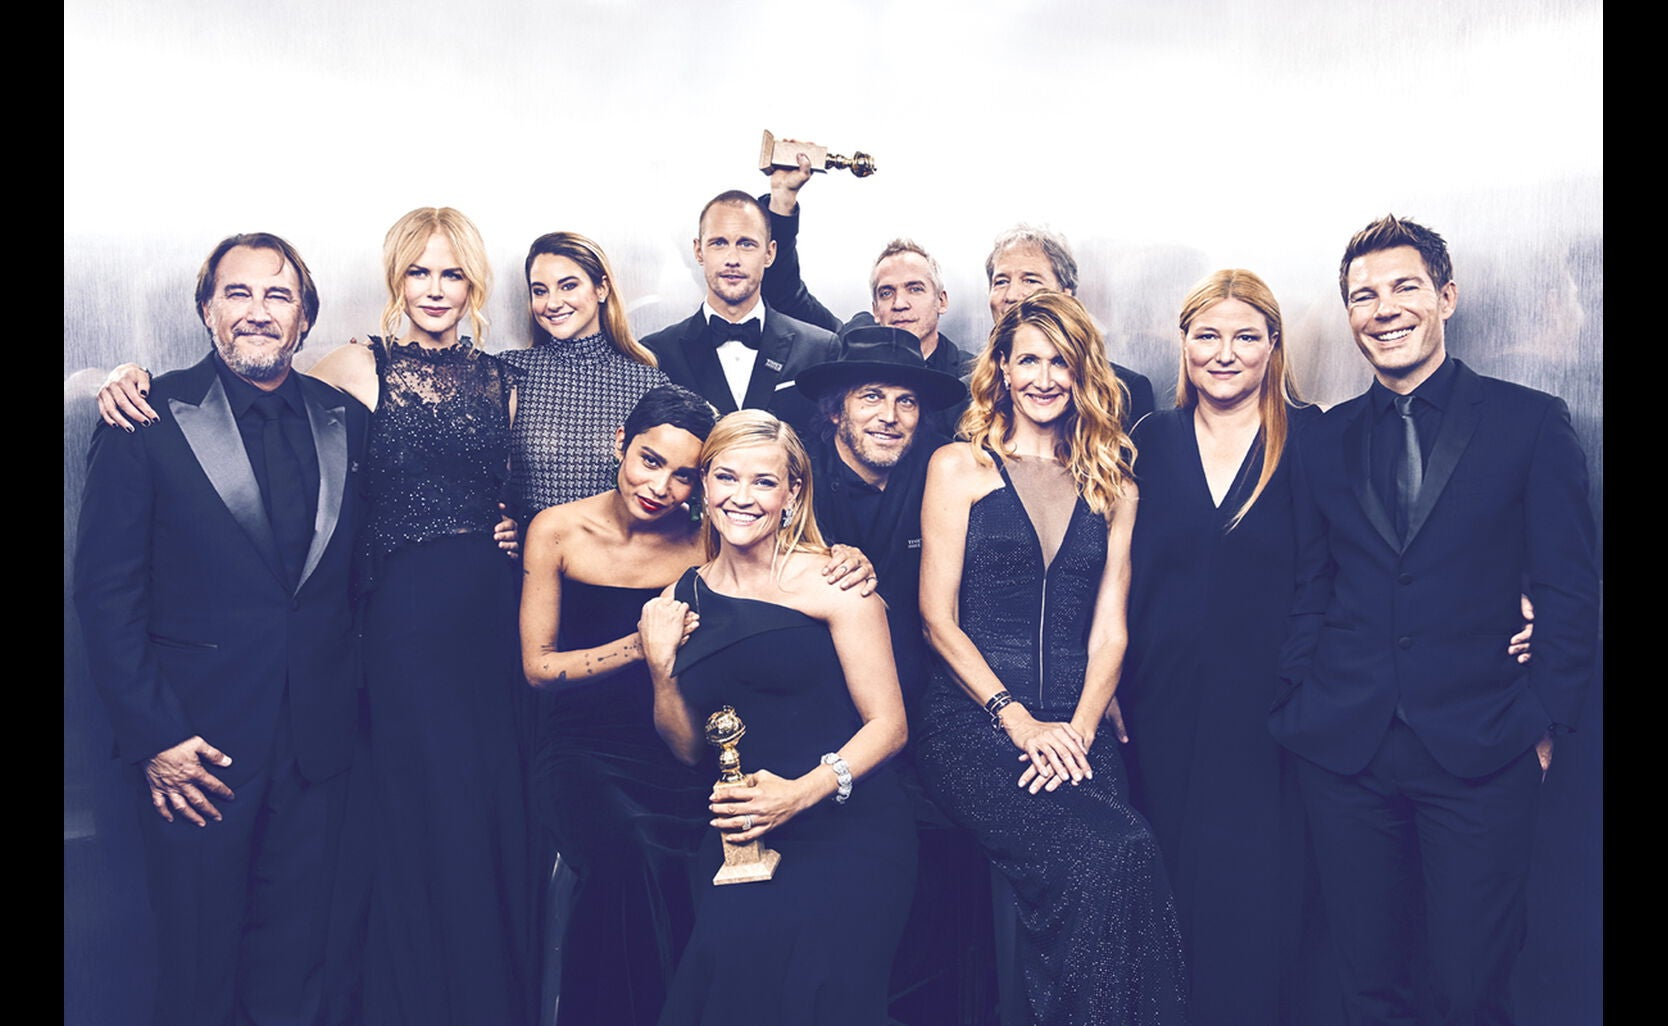 Nicole Kidman, Best Performance by Actress in a Limited Series; Laura Dern, Best Performance by an Actress, Televsision, Alexander Skarsgaard, Best Performance by an Actor, Televsion; Big Little Lies, Best Limited Series or Movie Made for Television